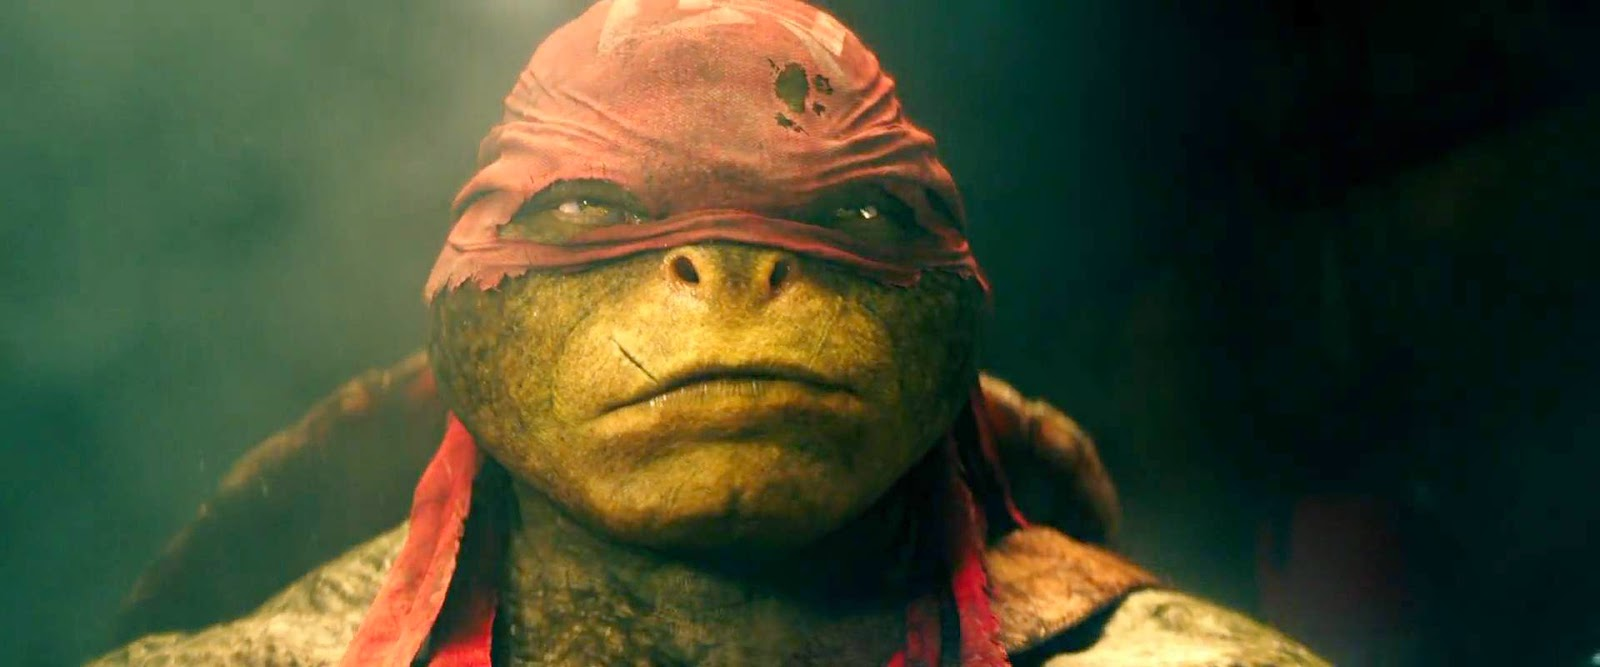 Teenage Mutant Ninja Turtles (2014) S2 s Teenage Mutant Ninja Turtles (2014)